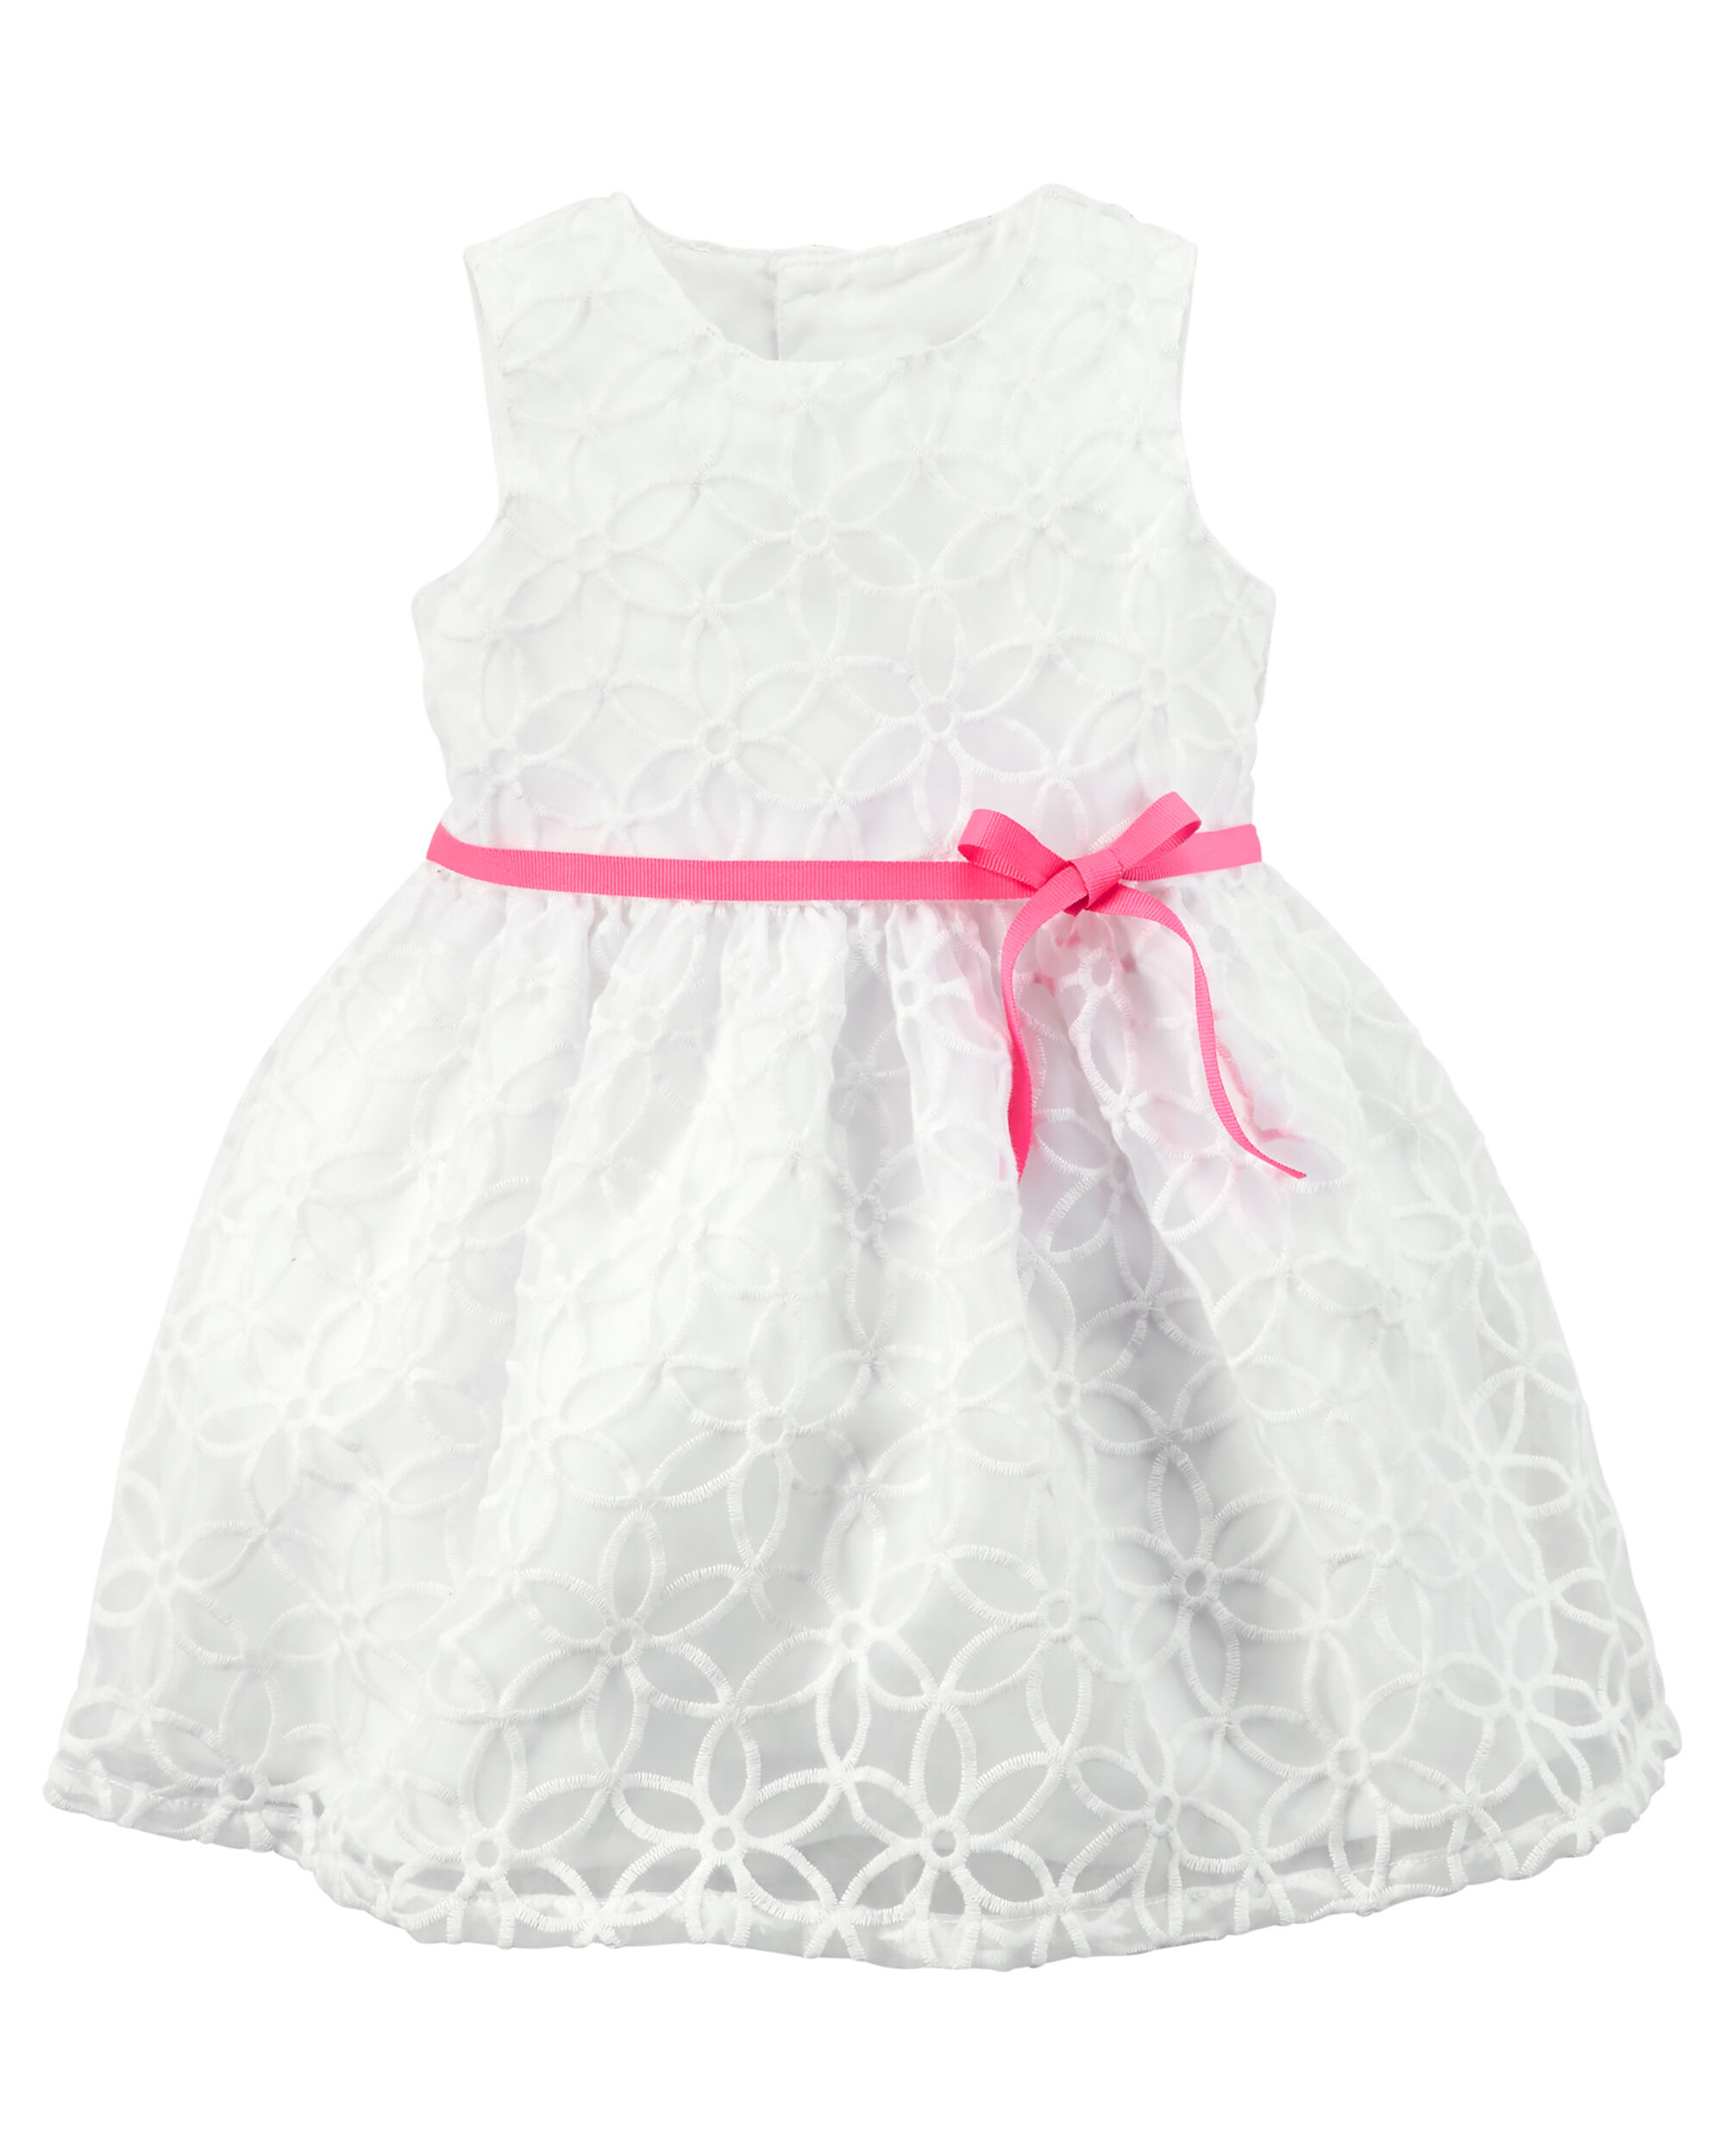 Baby pink and white lace dress